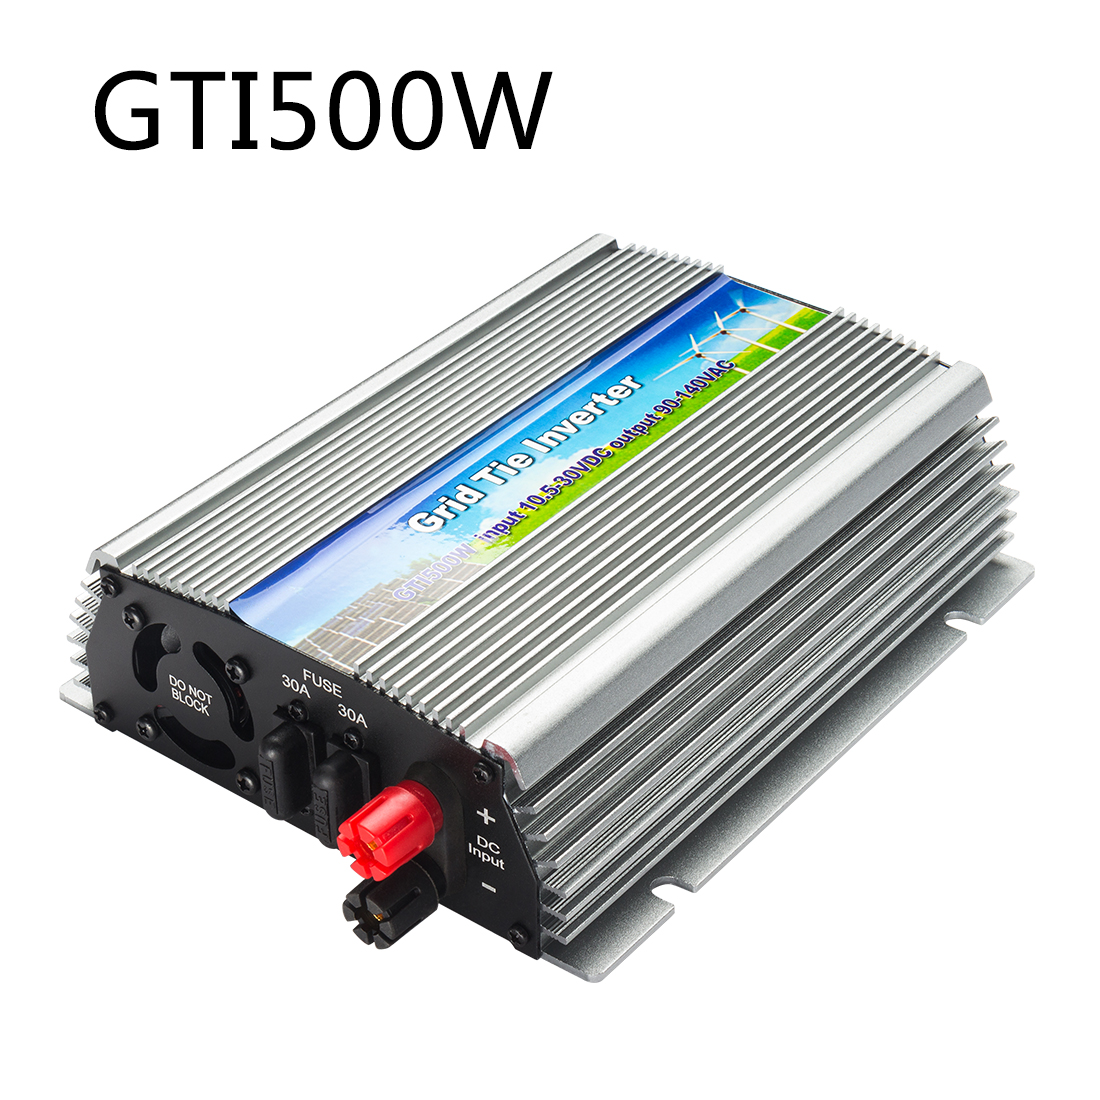 500w Grid Tie Solar Wiring Diagram Reinvent Your Pv System Us Gti Inverter Mppt For Panel Stackable Pure Rh Walmart Com Power Battery Diagrams